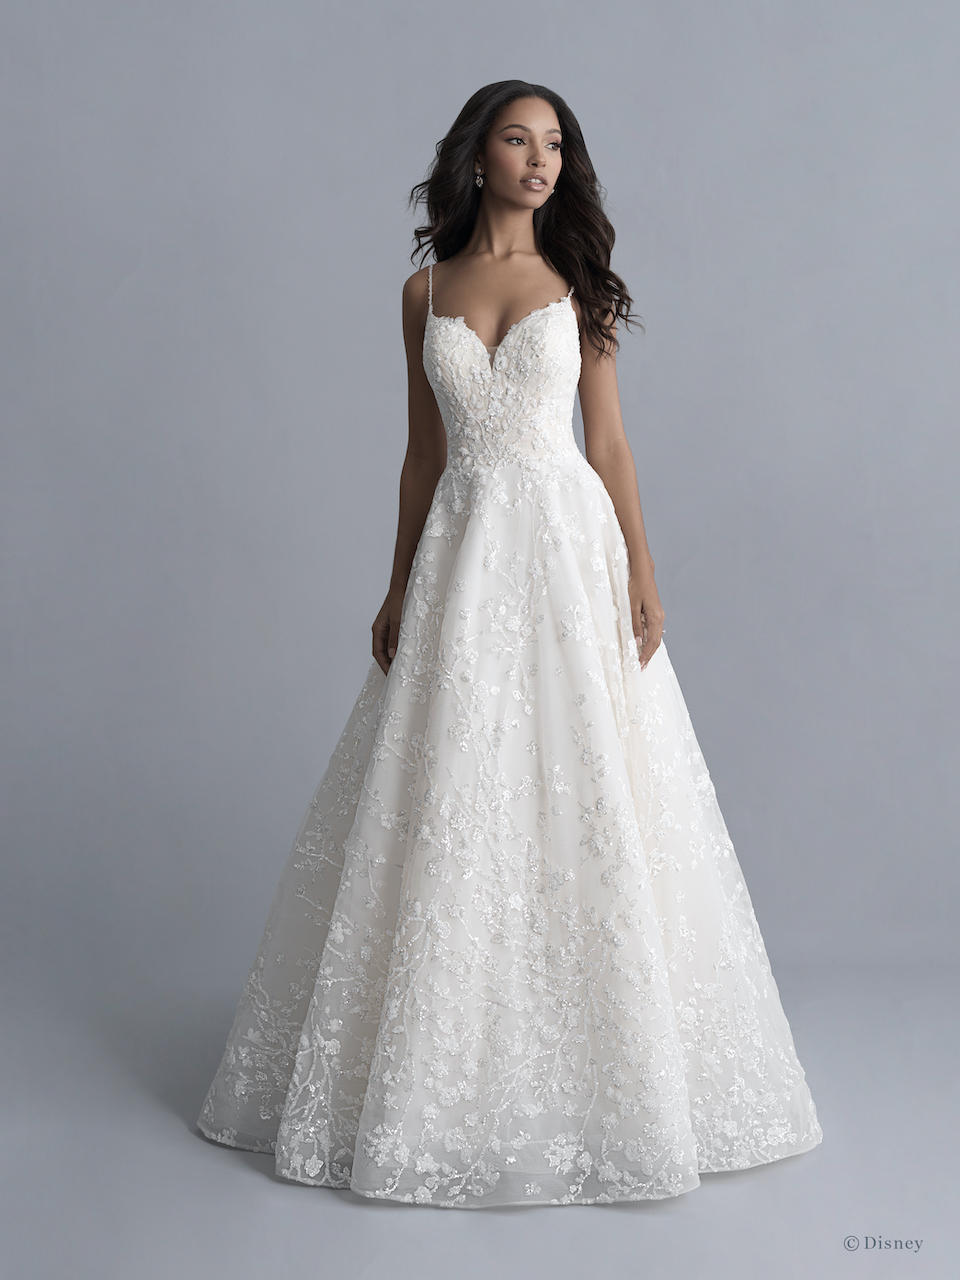 Spaghetti Strap Floral Beaded And Embroidered Ball Gown Wedding Dress With Sparkle Sequins Kleinfeld Bridal,Mermaid Sweetheart Lace Romantic Wedding Wedding Dresses